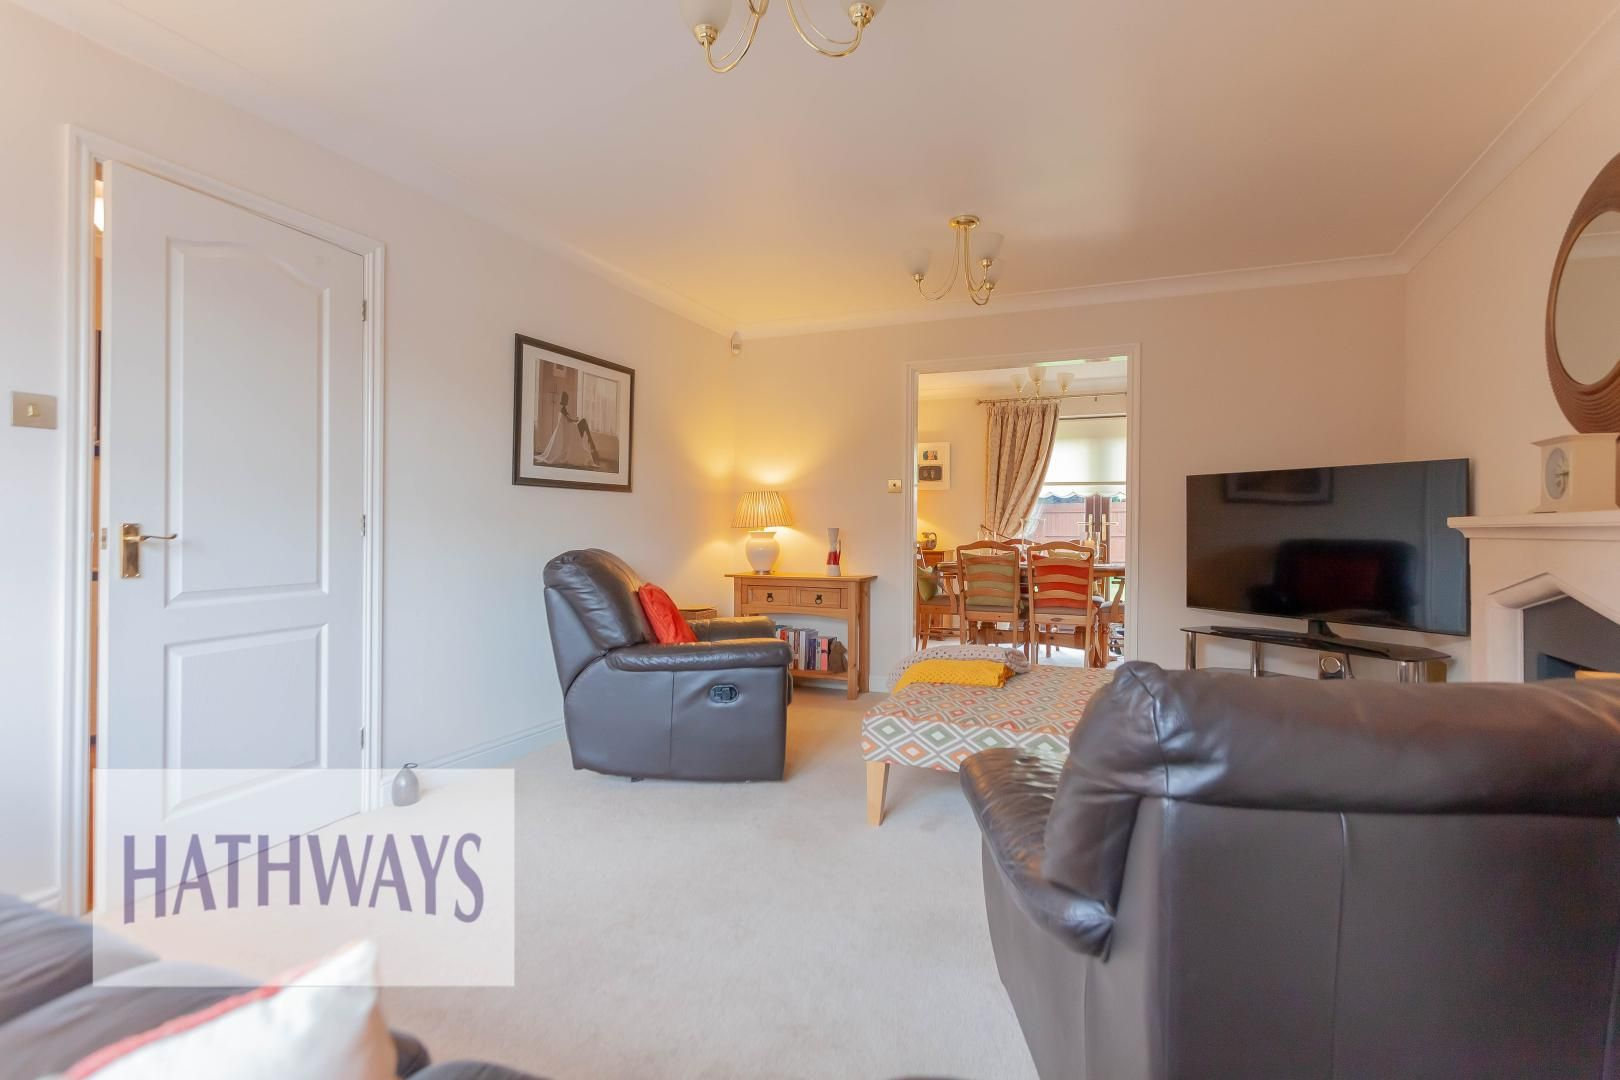 4 bed  for sale in Candwr Park  - Property Image 3